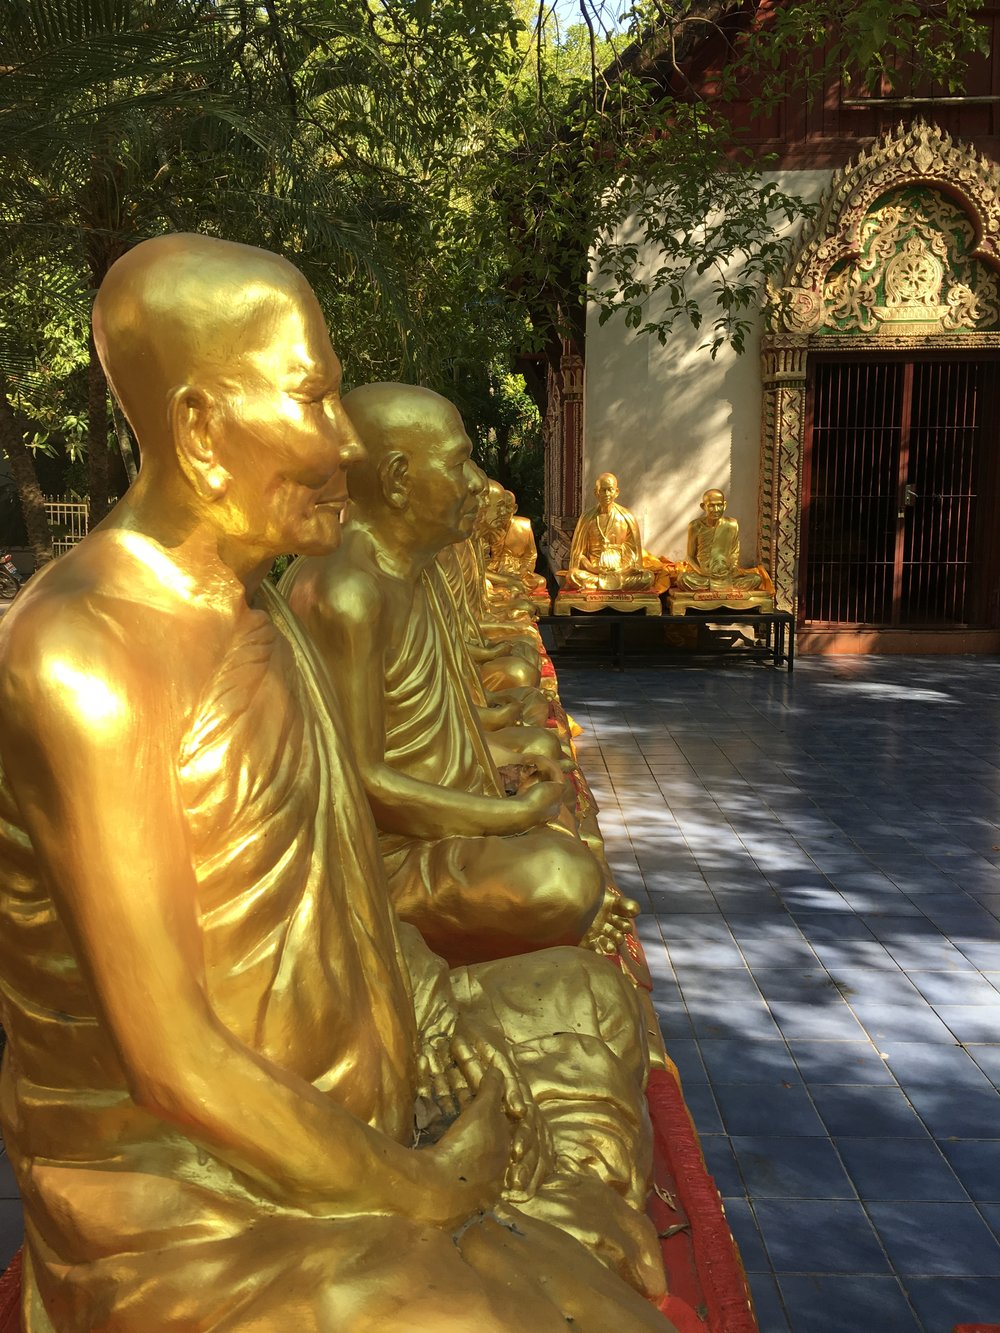 Immortalized monks at the War Phra Singh Temple in Chiang Mai, Thailand